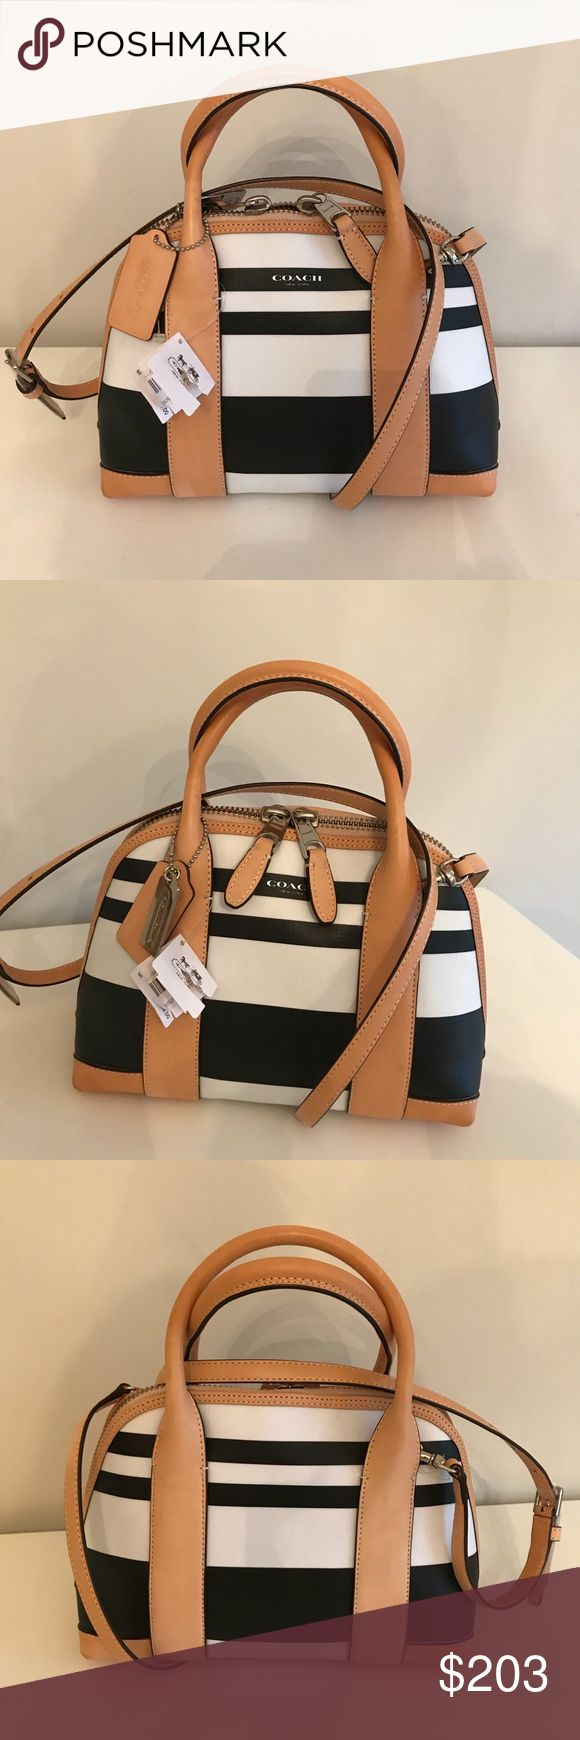 NWT Coach Mini Preston Satchel NWT Coach Bleeker Striped Coates Canvas Mini Preston in Silver Black White.  New with tags.  One small flag in bottom corner of bag (see photo for more detail).  Otherwise excellent condition. Coach Bags Satchels